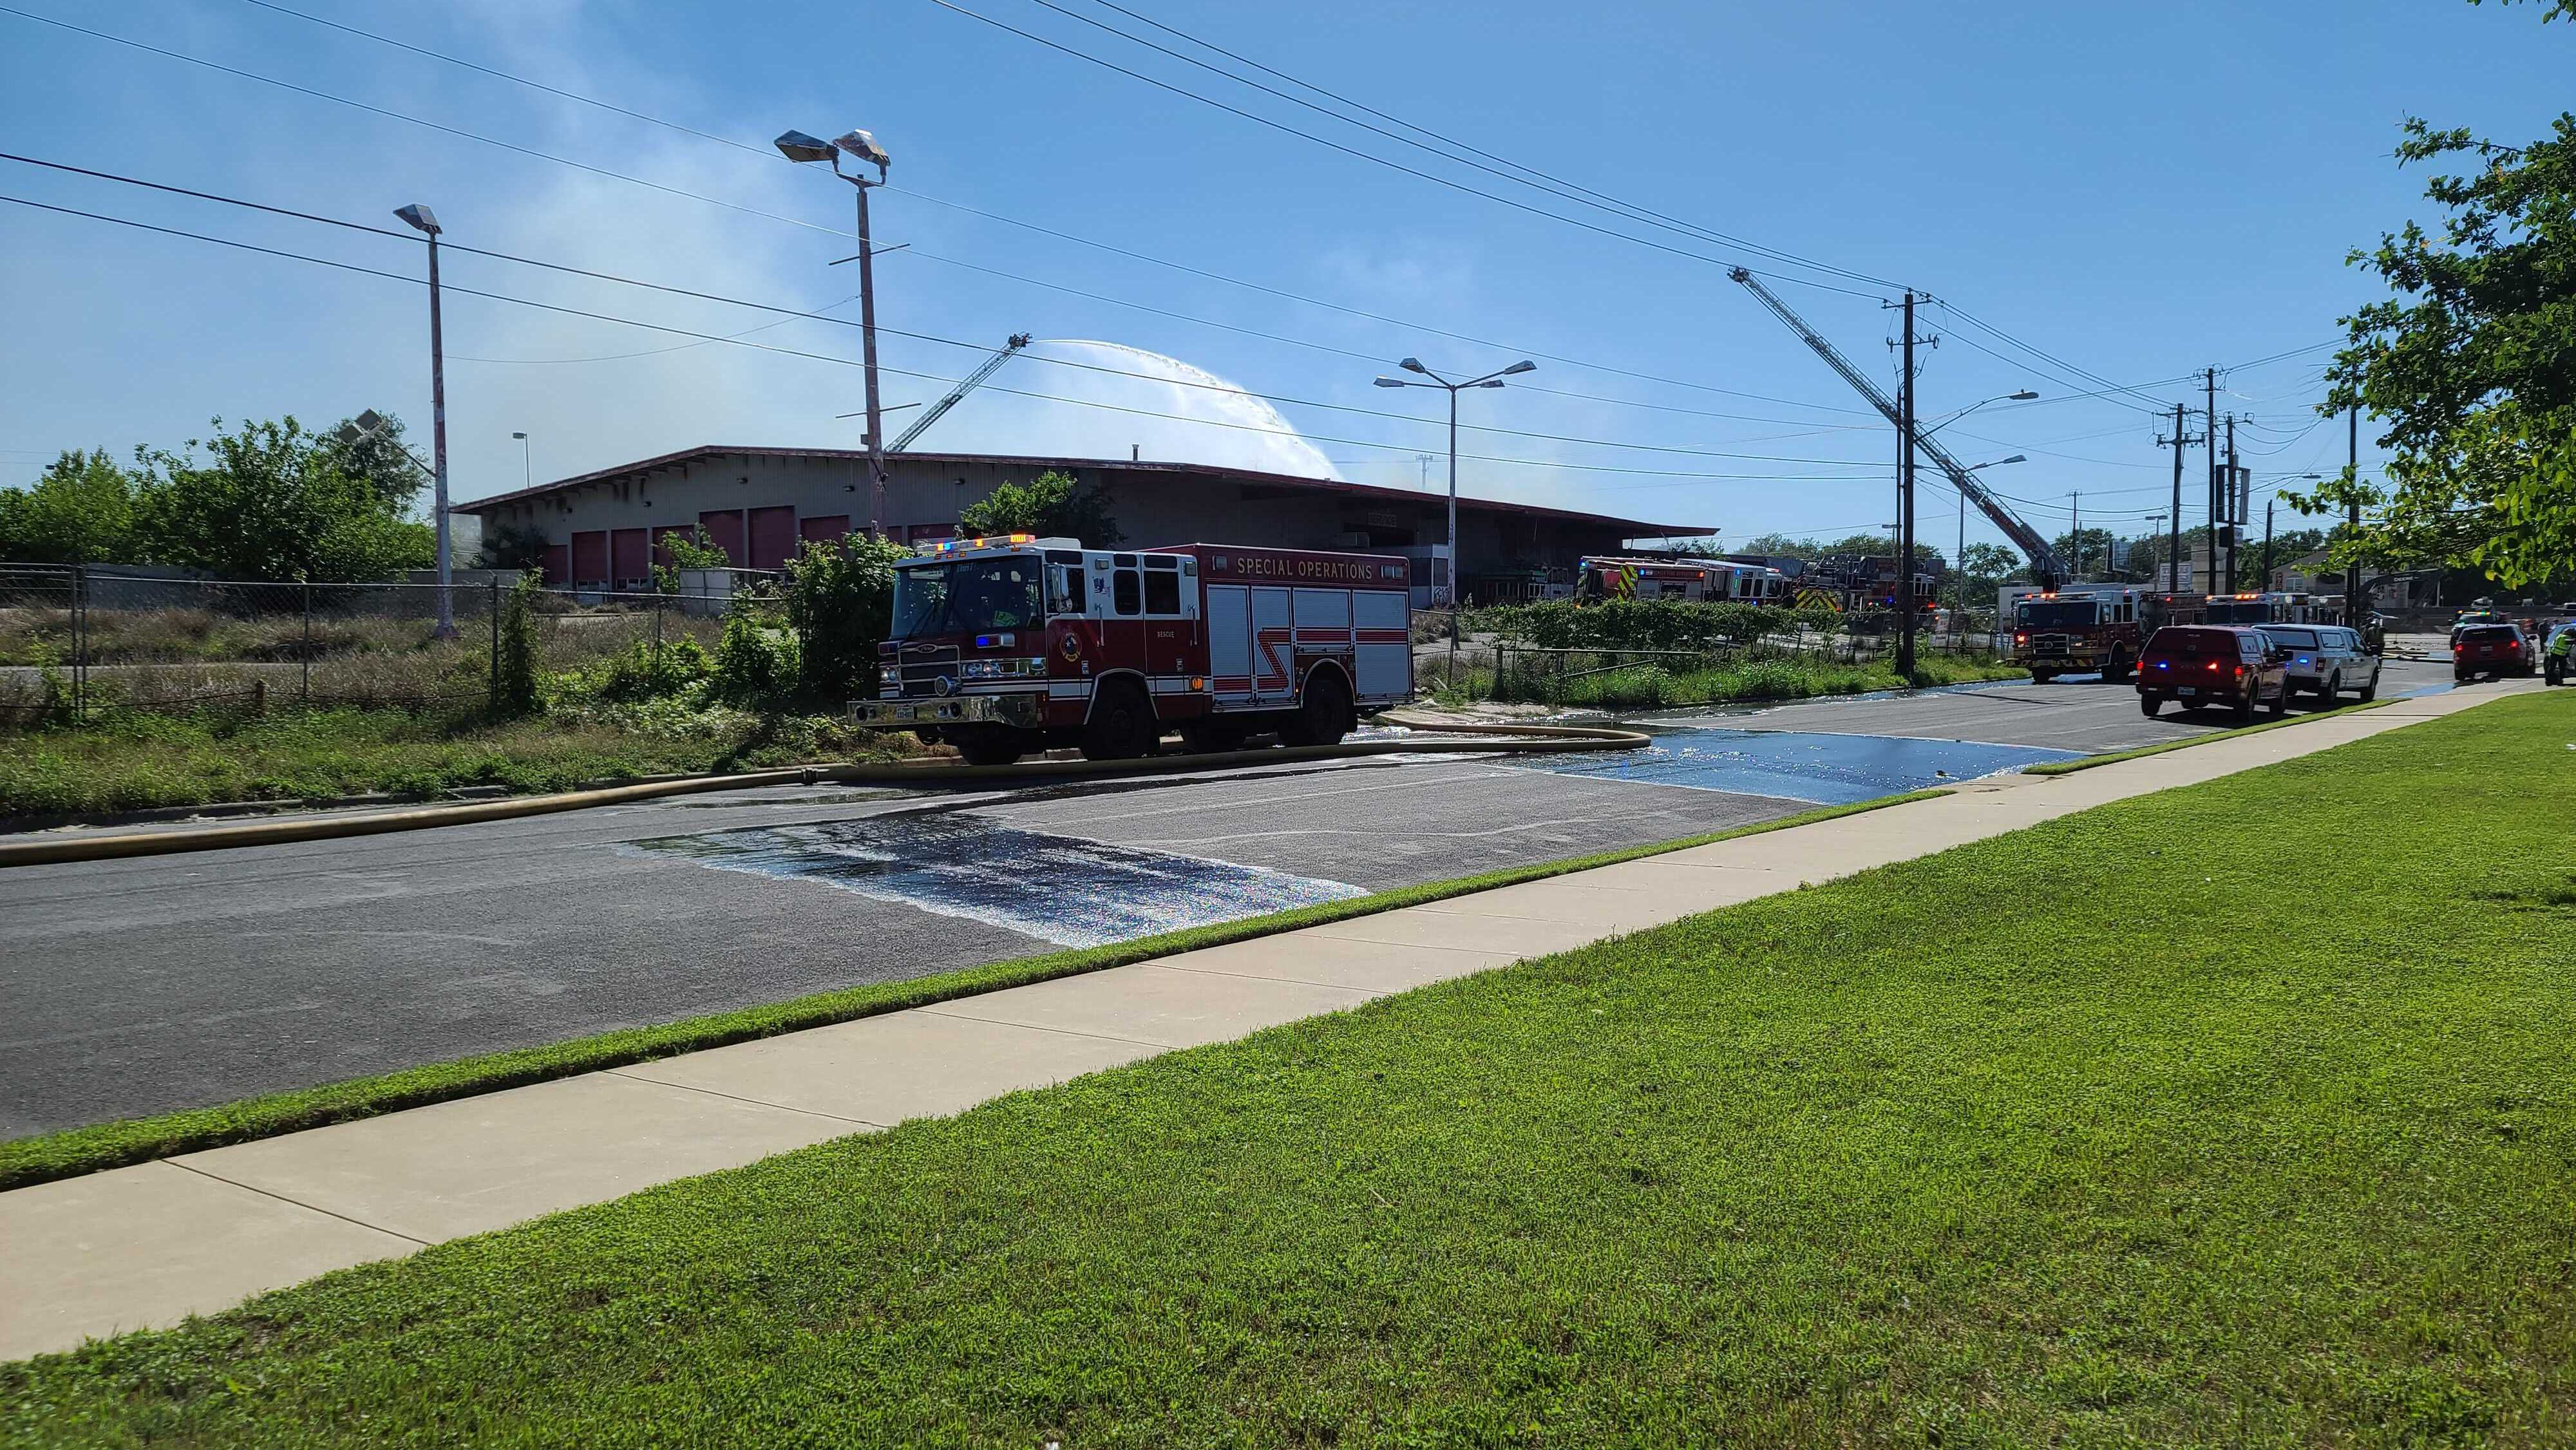 Vacant warehouse fire off I-35 northbound service road near US 183 May 6, 2021 (KXAN Photo/Andrew Choat)